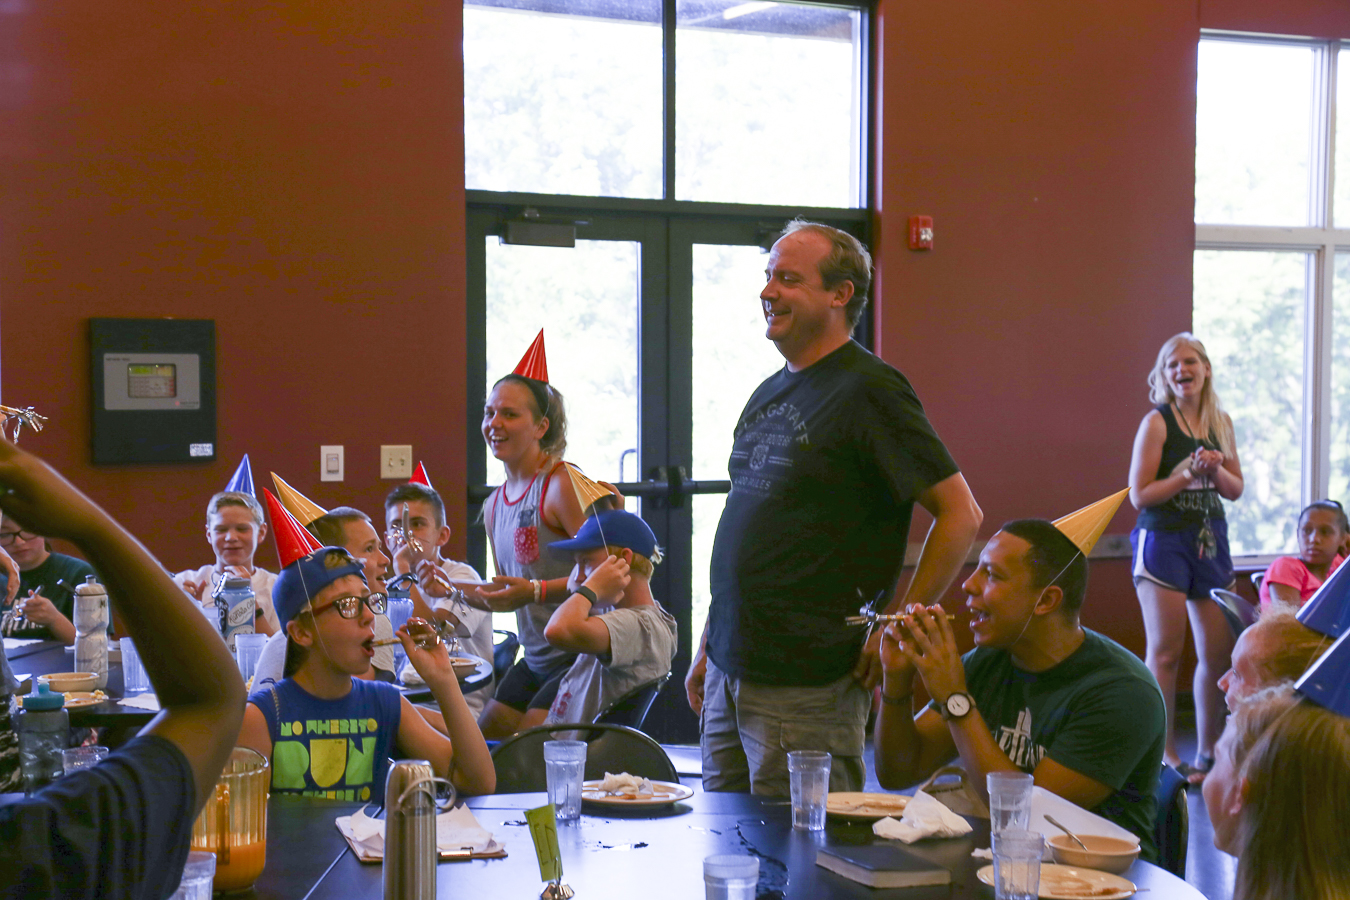 Our campers got the joy of celebrating Dan's birthday with him! Happy Birthday!